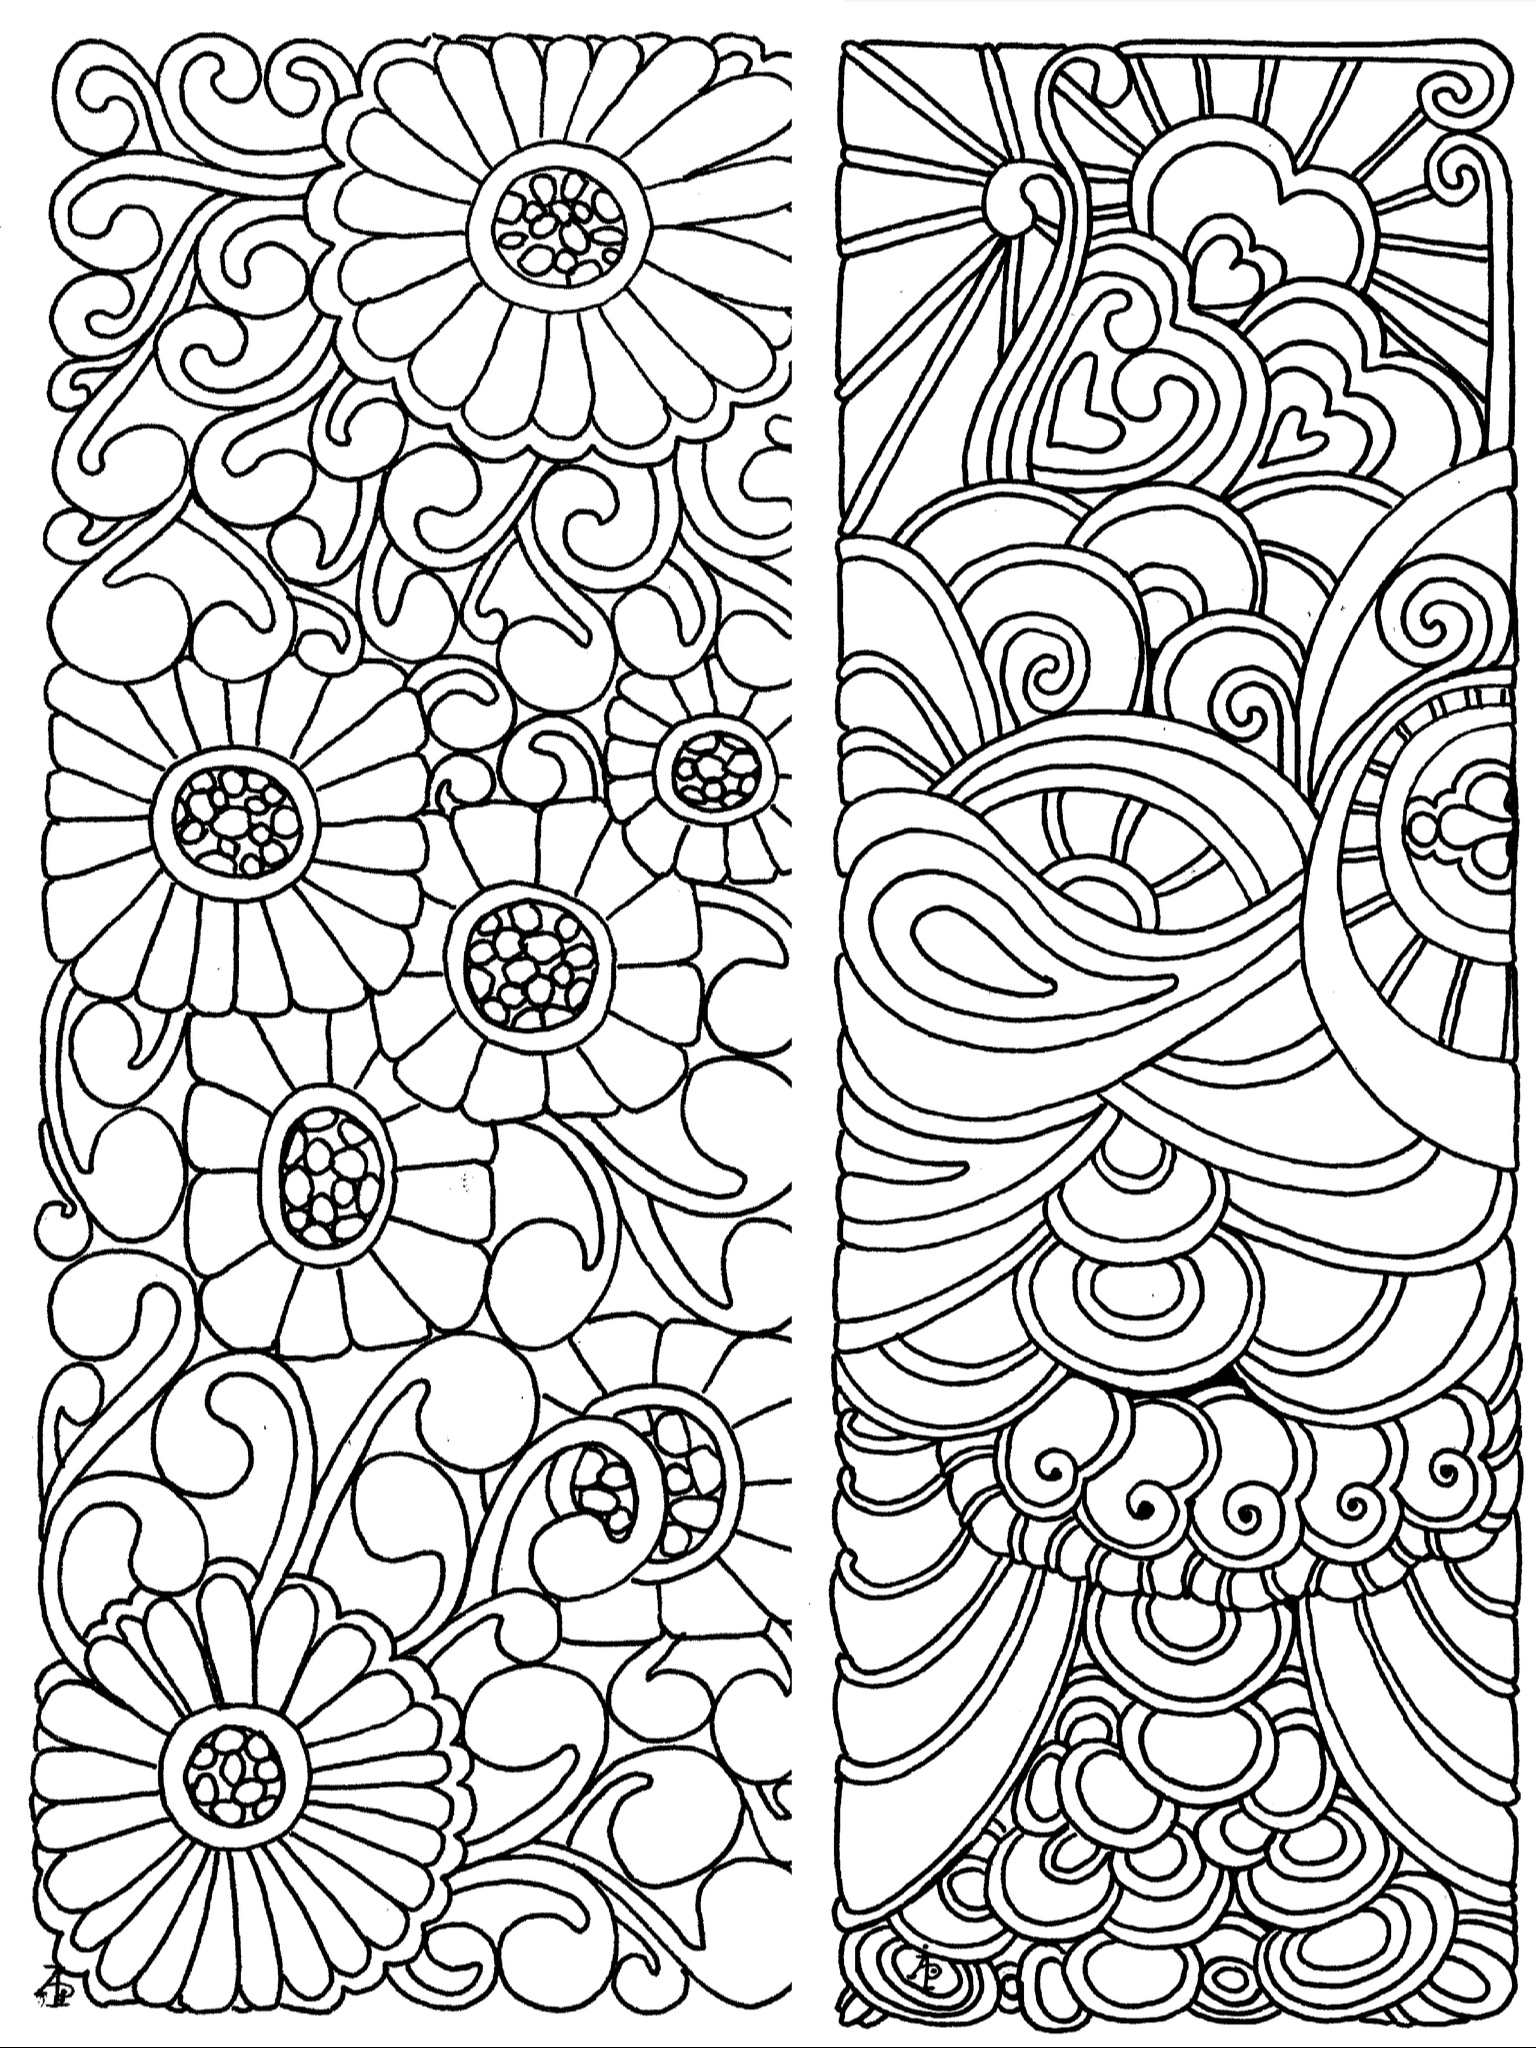 Pin By Esther On Printables Coloring Bookmarks Bookmarks Printable Coloring Pages